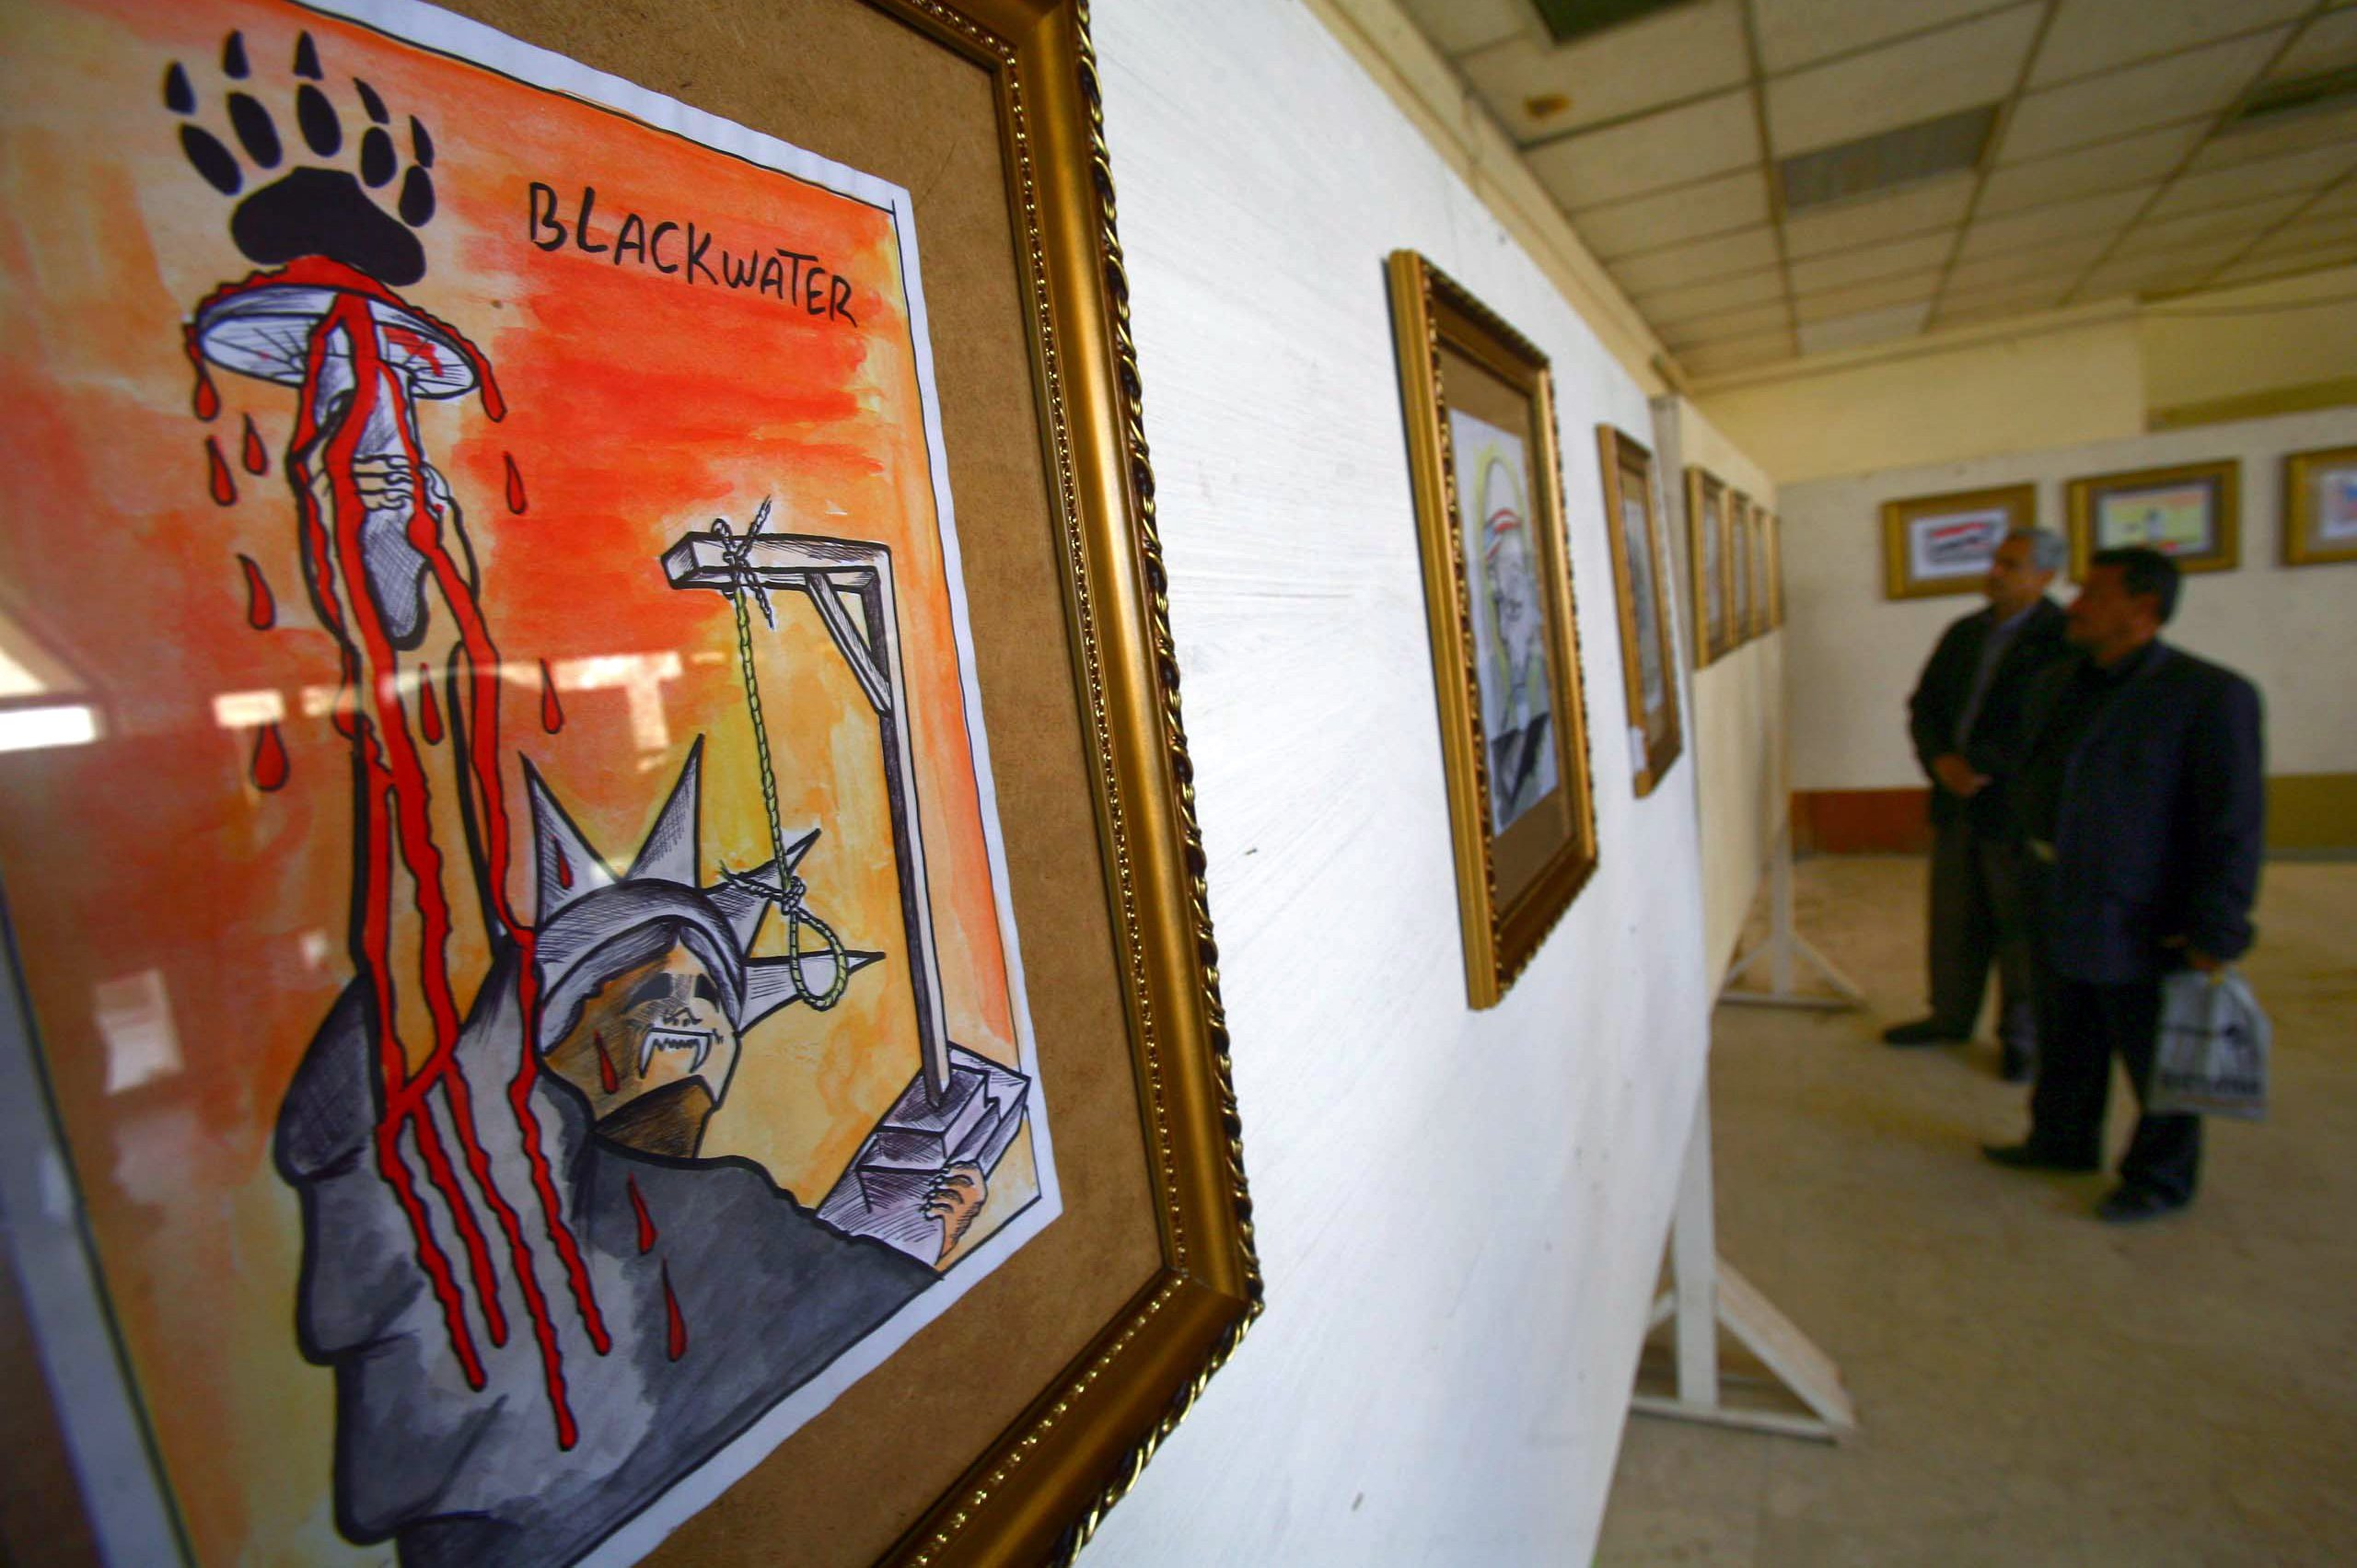 A cartoon against US security firm Blackwater, which was barred from Iraq over the deadly 2007 shooting, is displayed at an exhibition in Karbala, central Iraq in 2011 (AFP)